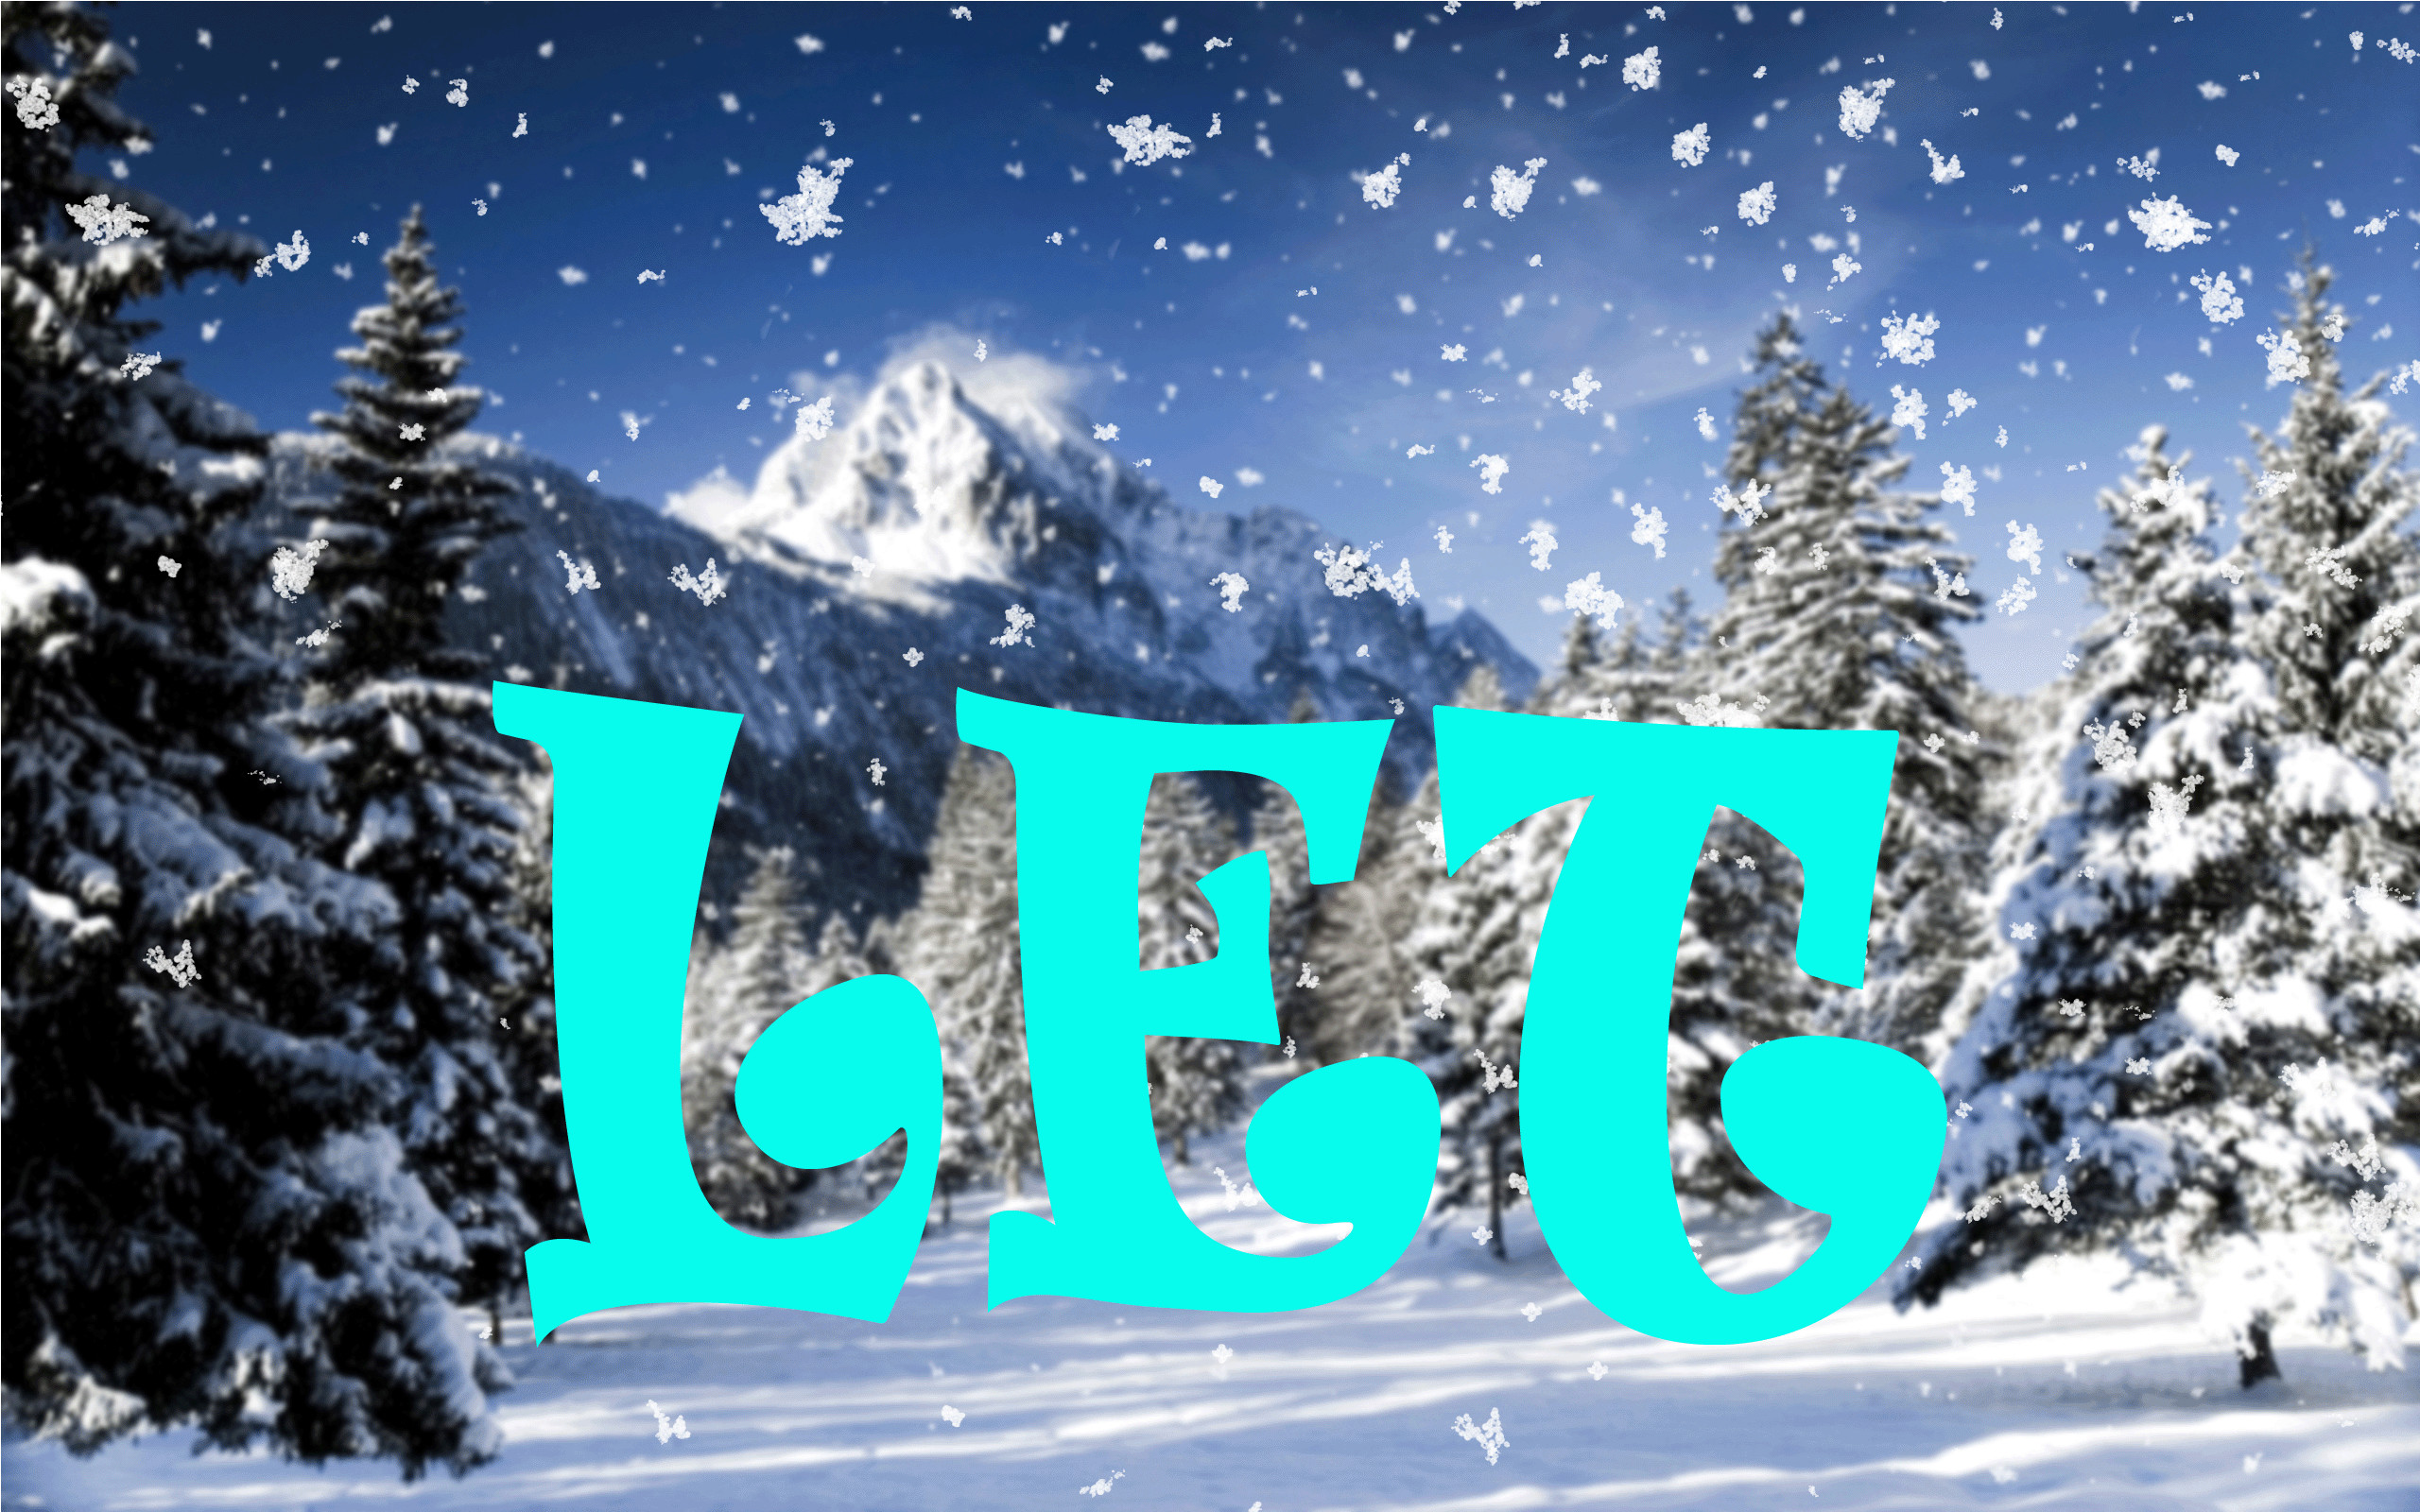 54373 The Touch Of Snow · SNOW SNOW SNOW animation 1